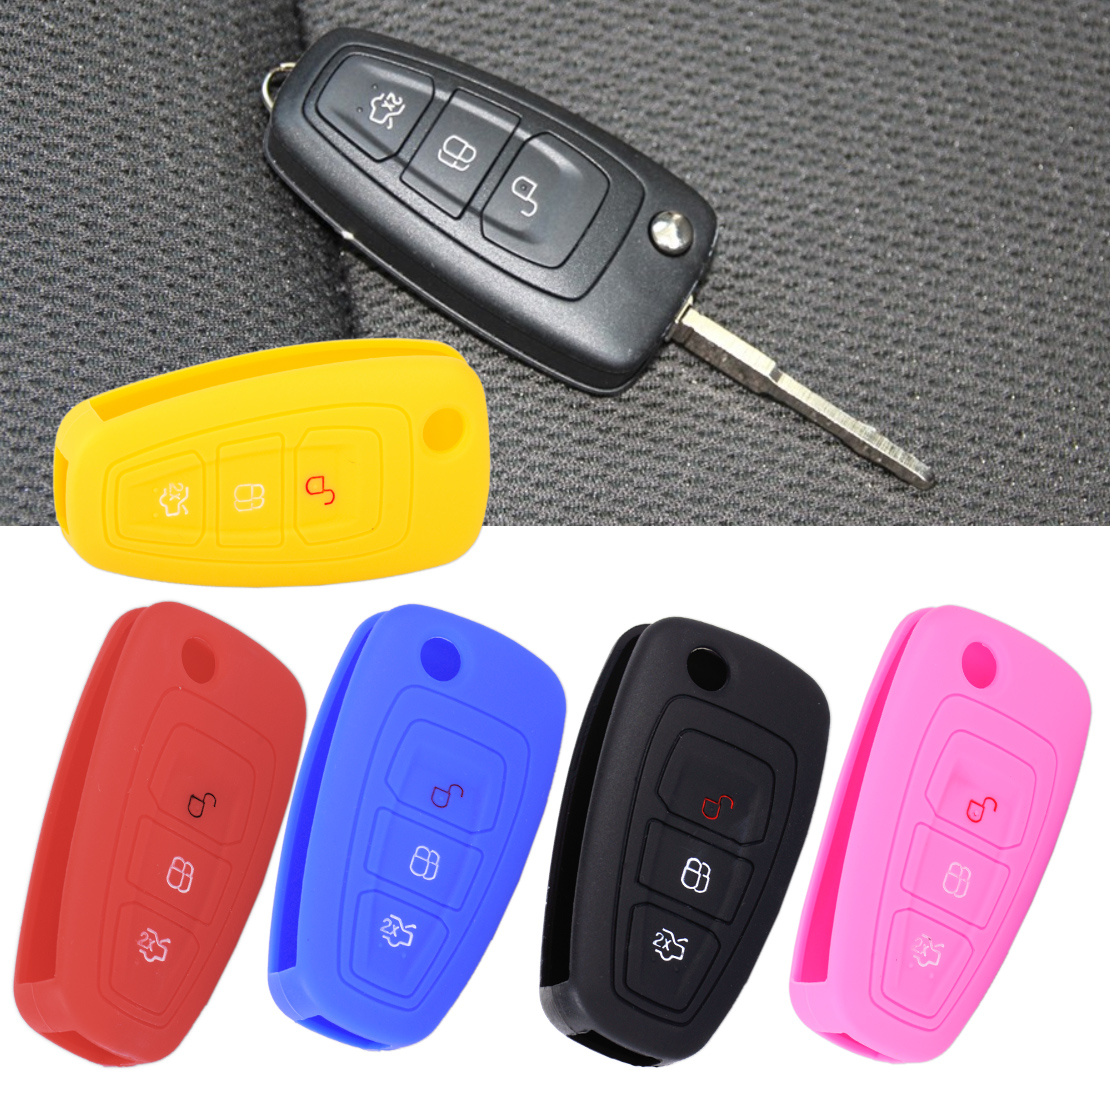 CITALL 3 Buttons Silicone Flip Key Cover Car Remote Case Fob Shell for Ford Focus MK3 Mondeo Fiesta Escape Kuga Ranger Ecosport 3d creative chrome steering wheel sticker for ford fiesta ecosport kuga escape focus mondeo new drop shipping